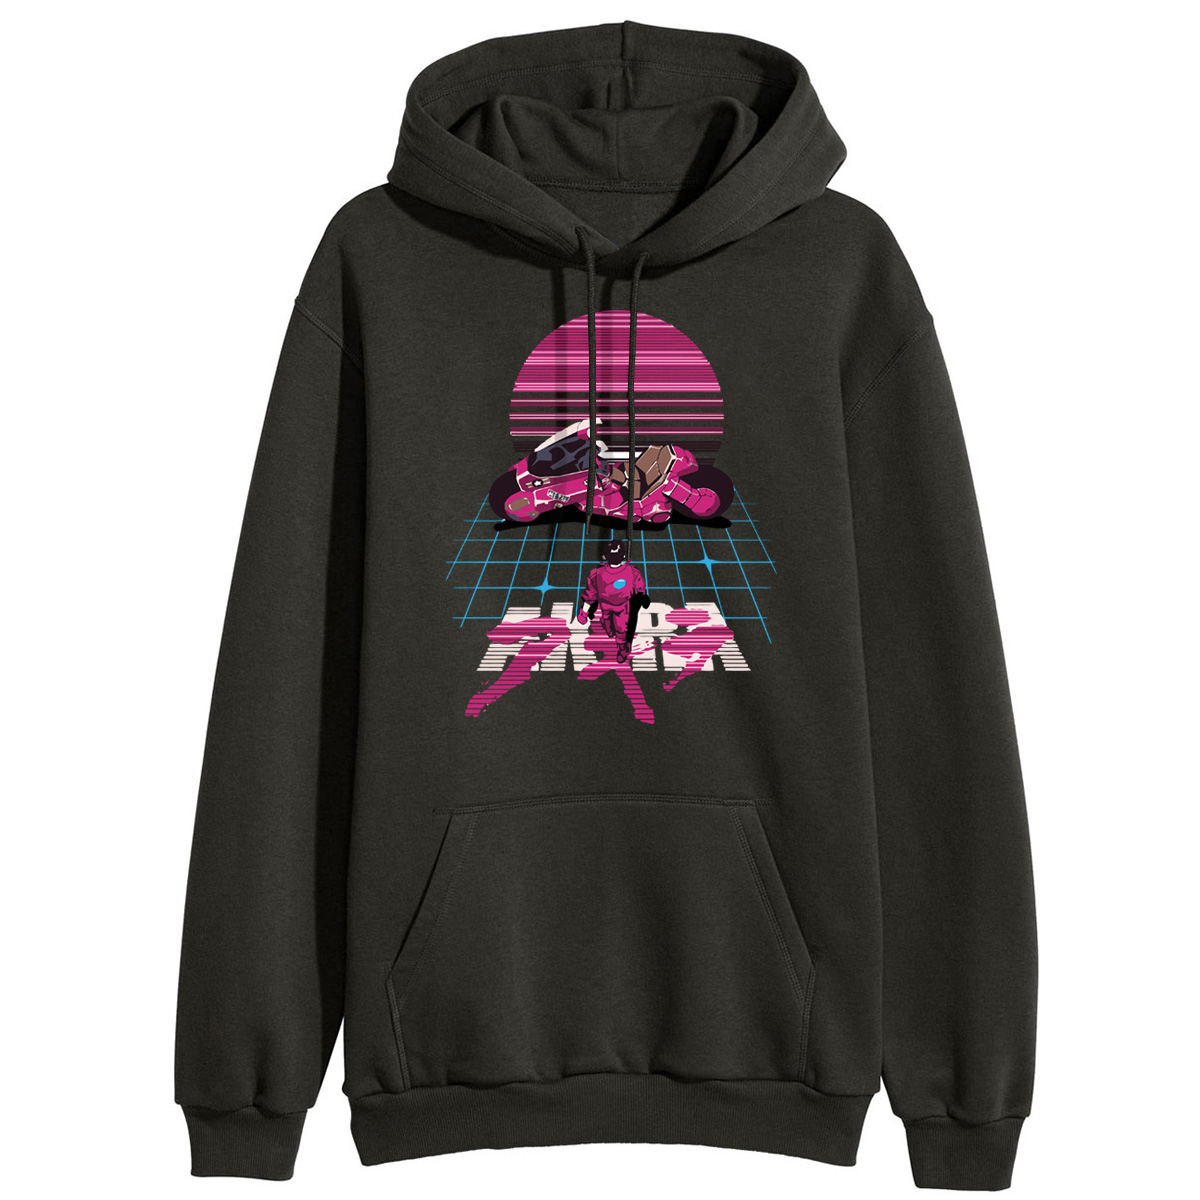 Akira Synthwave Japanese Anime Hooded Sweatshirt 2019 Winter Casual Women Hoodies Tracksuit Hip Hop Style Fitness Fashion Hoodie